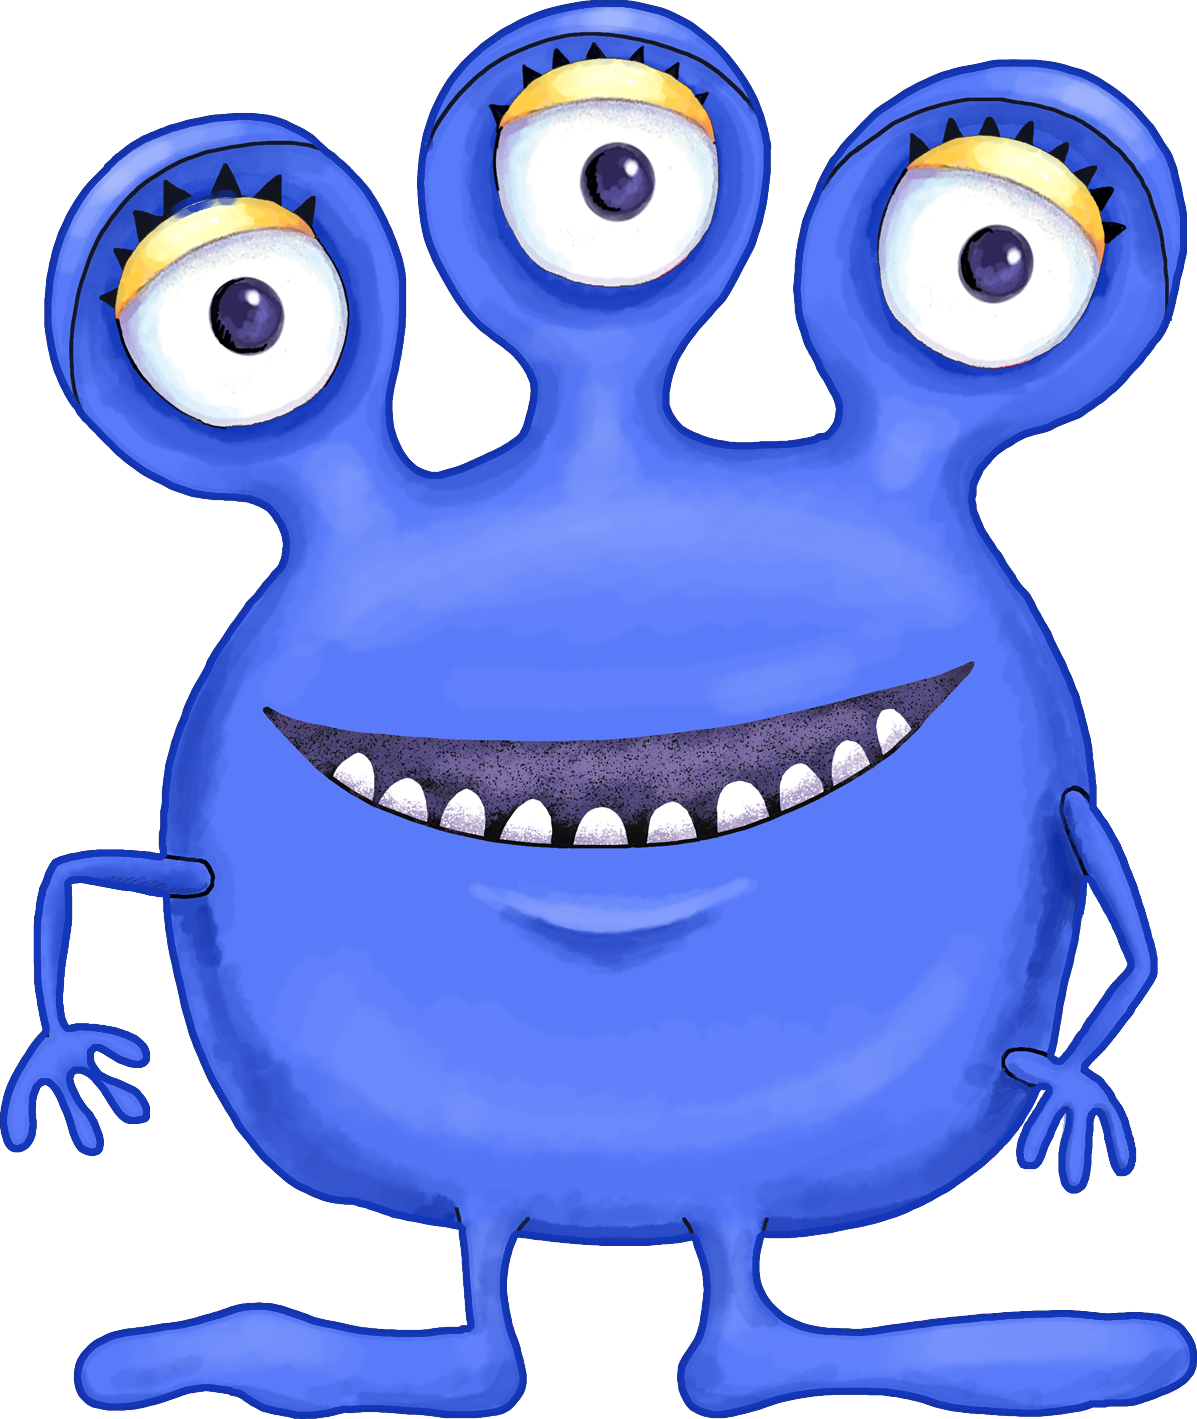 Cute alien kid clipartbarn. Ufo clipart friendly